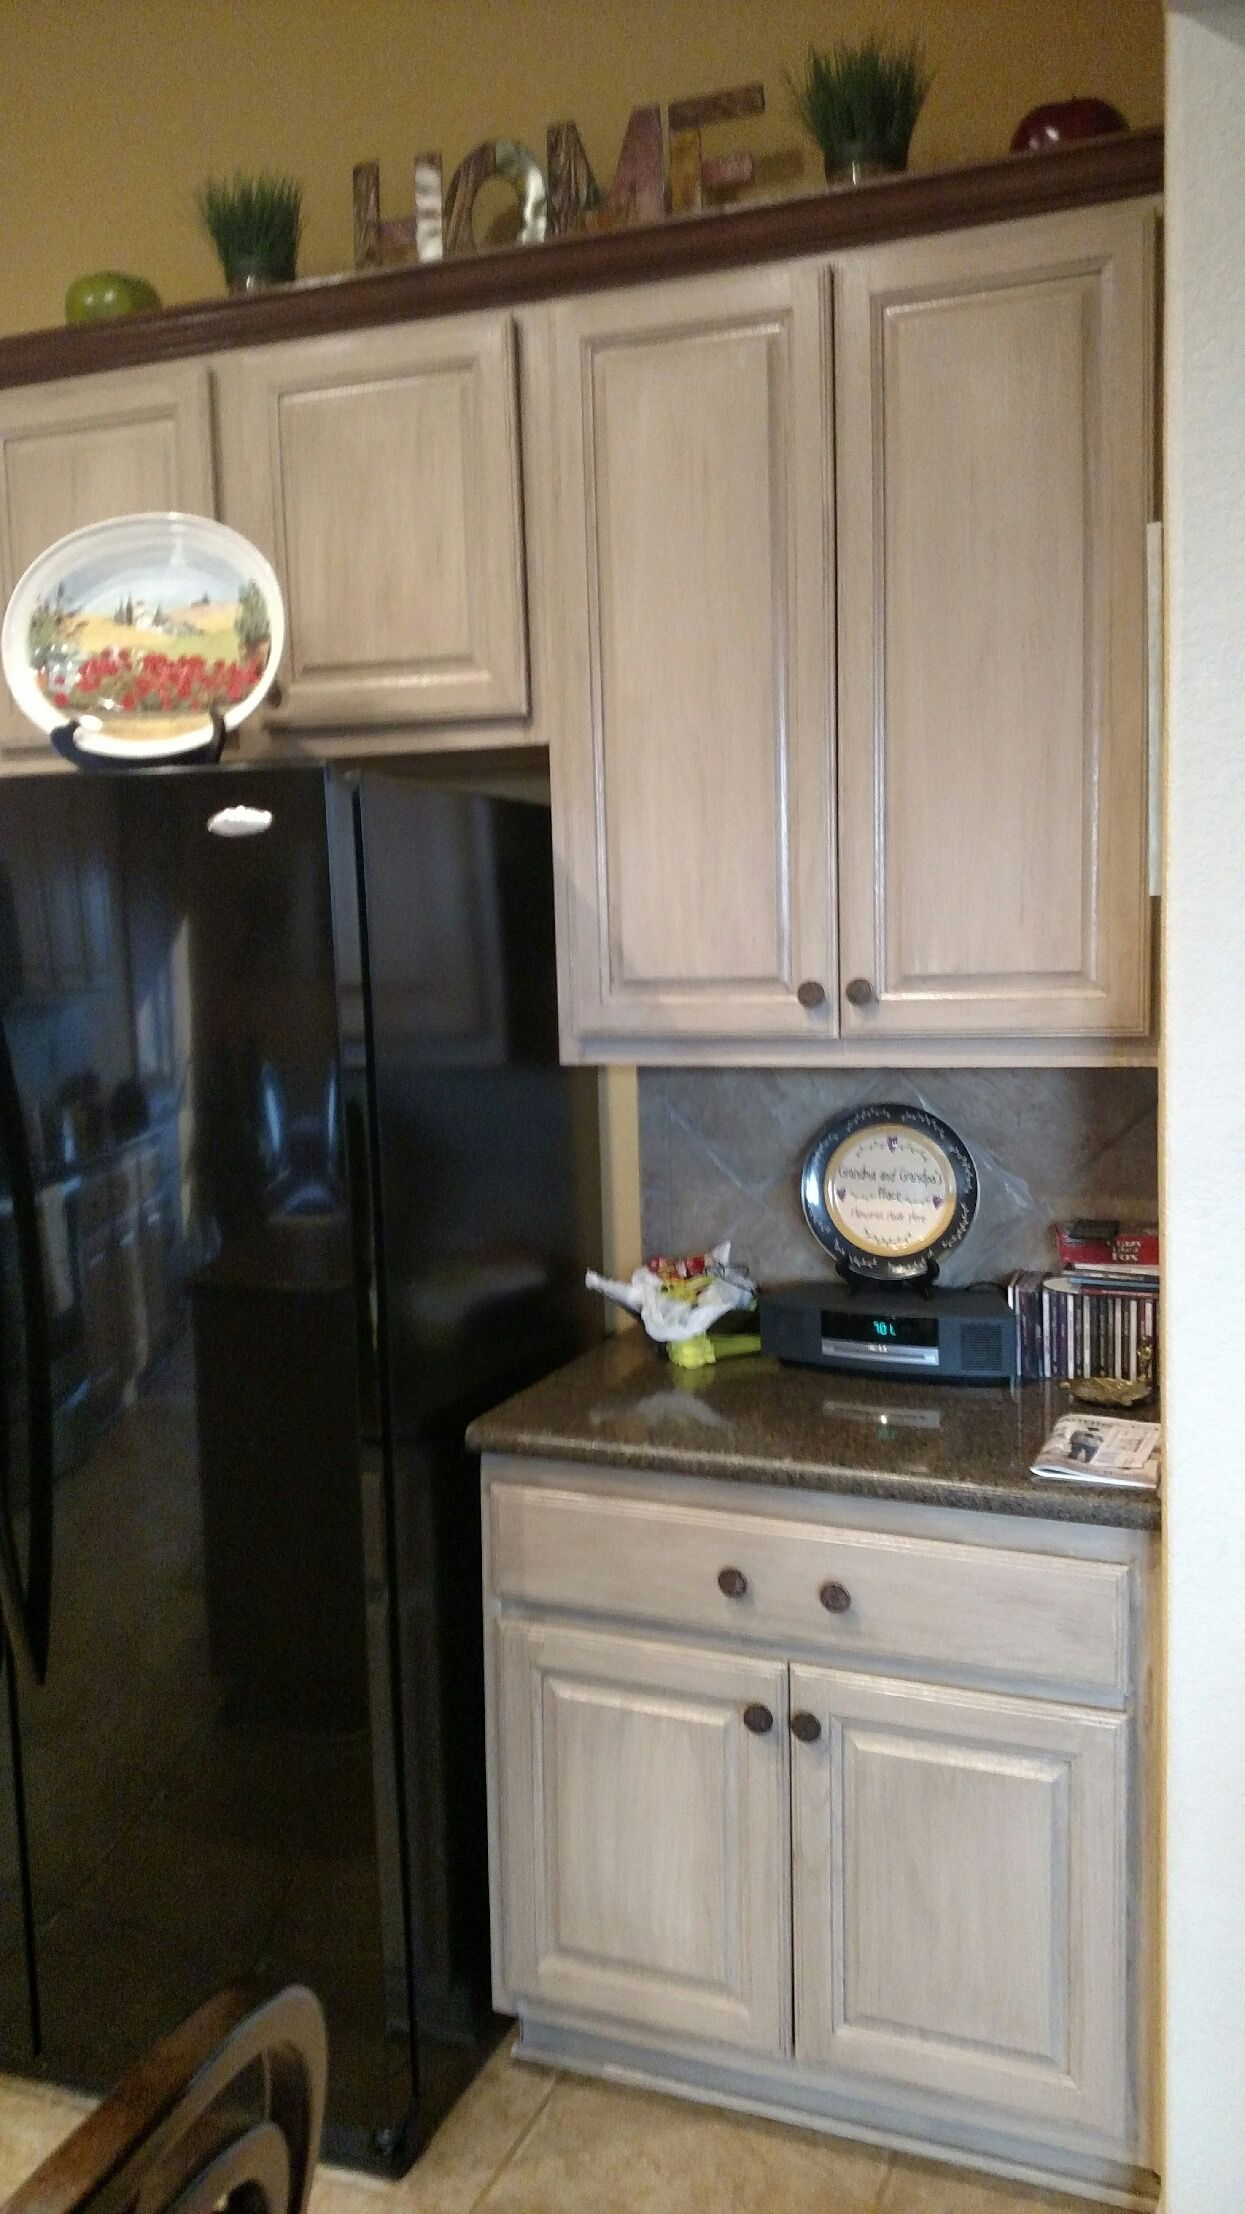 These stained oak cabinets were updated with paint and strie glaze